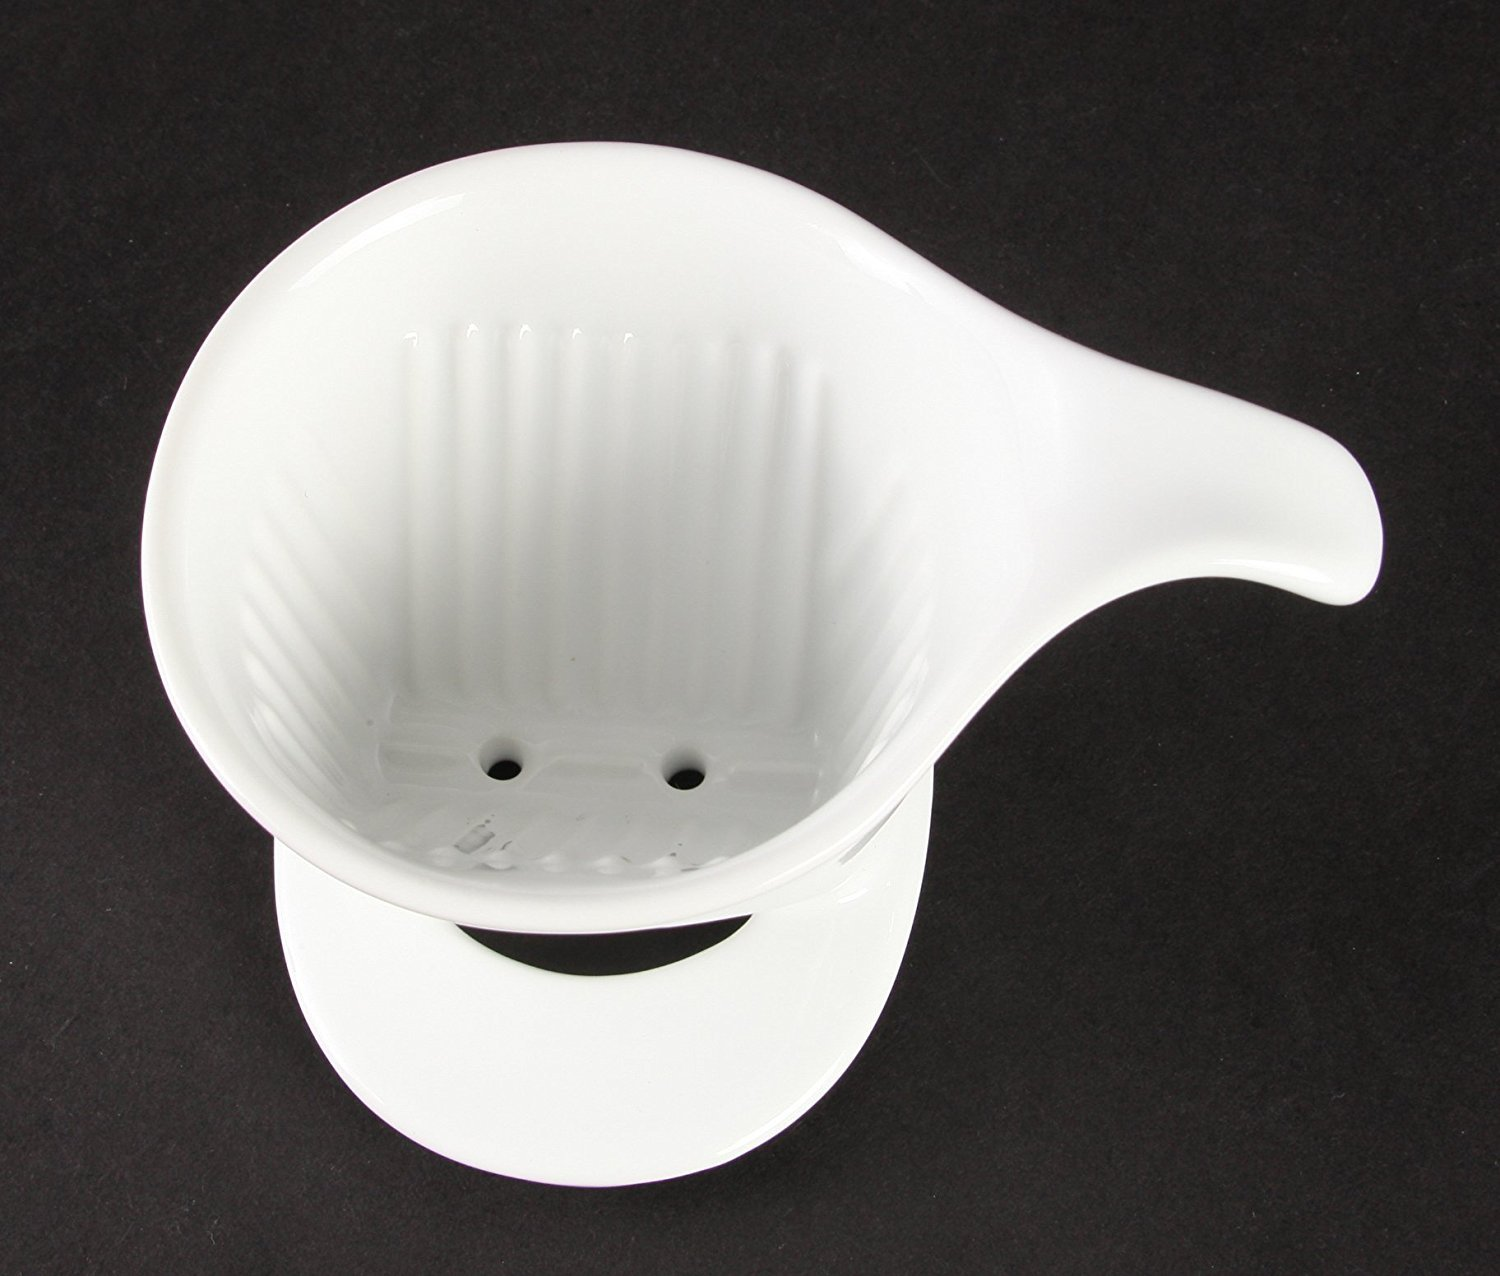 Pour Over Coffee Maker Ceramic : Bee House Ceramic Pour Over Coffee Maker Dripper - Large - Drip Cone -White eBay